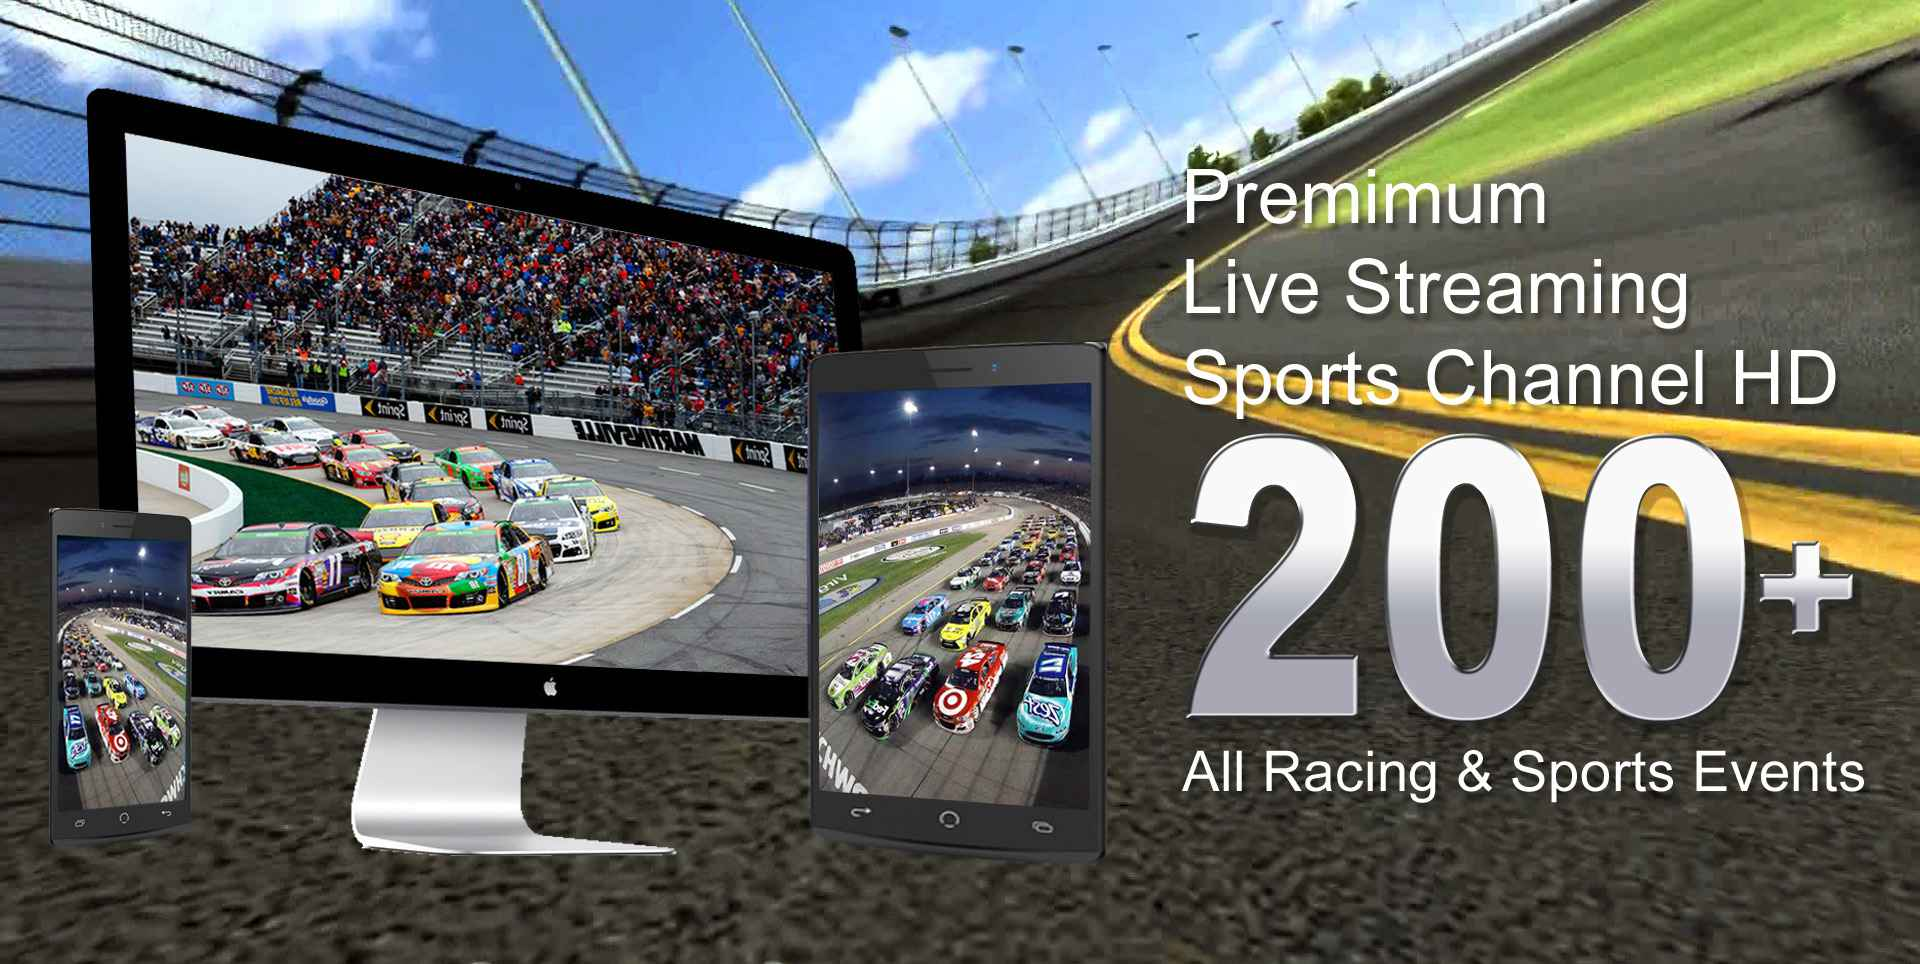 Nascar Lilly Diabetes 250 Live Racing